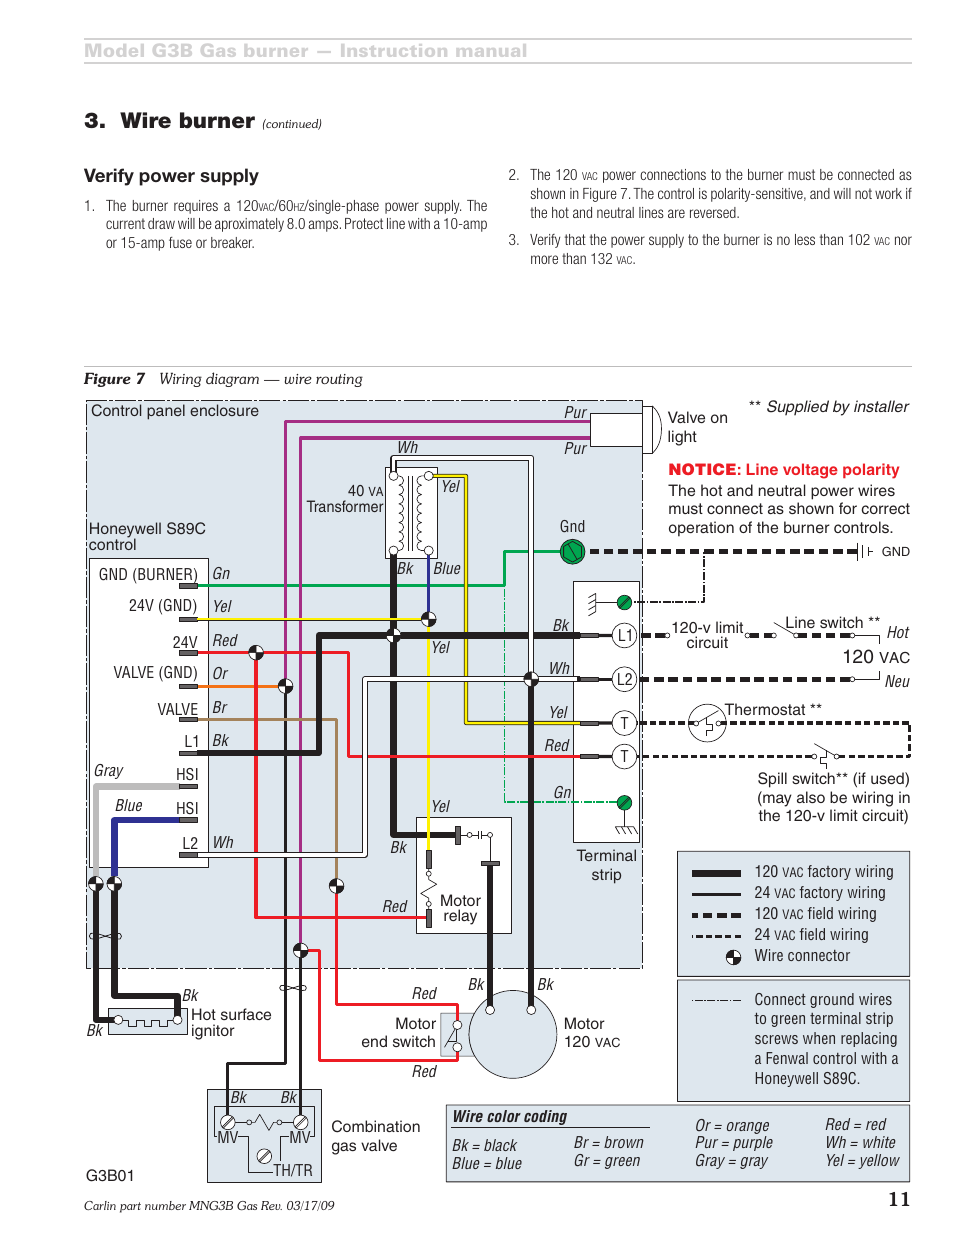 wire burner | carlin g3b user manual | page 11 / 24 on dc motor control